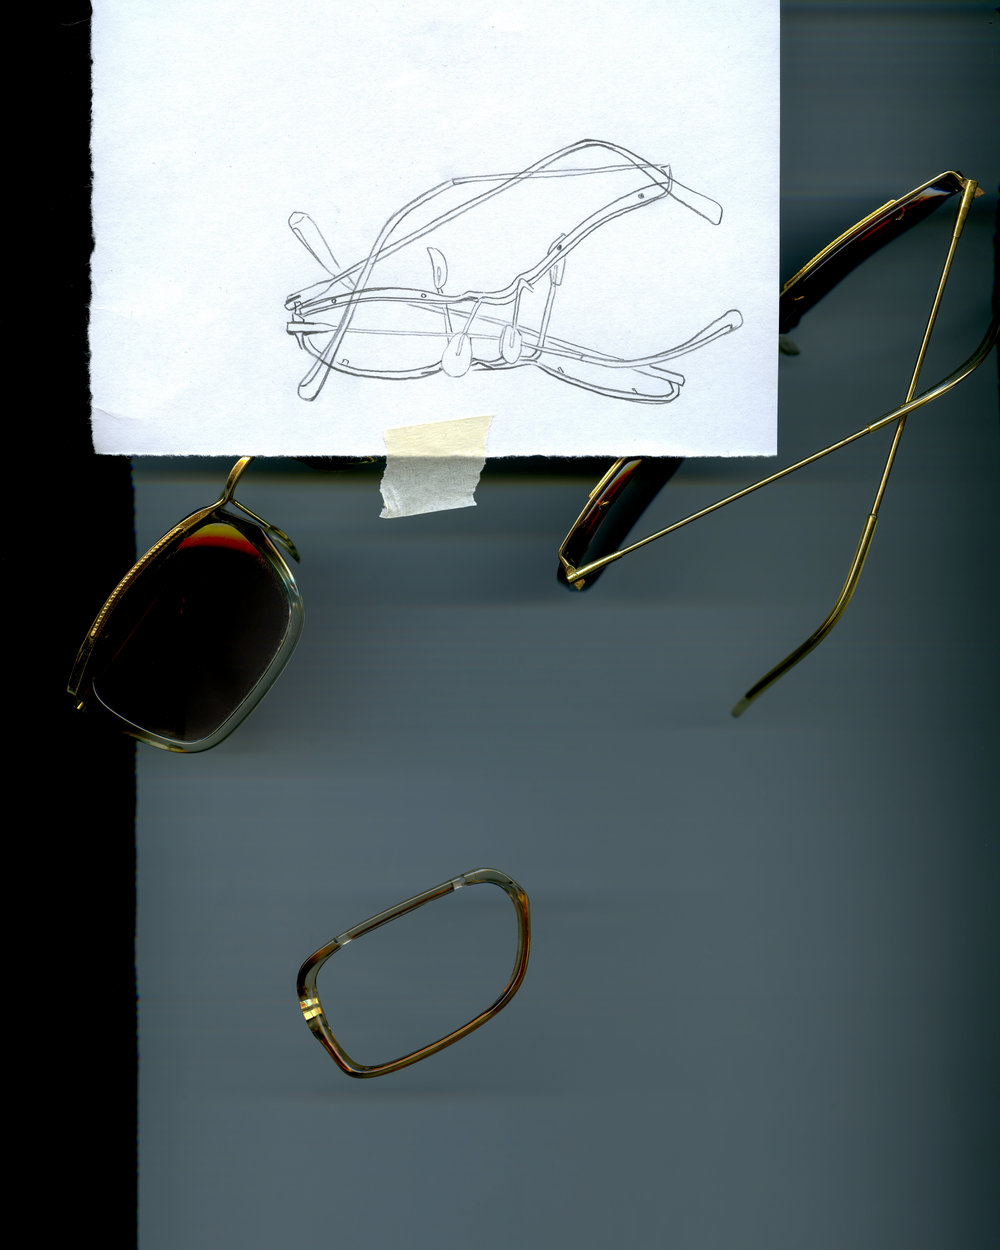 bidules-lunettes-brussels-upcycling-hybrids-3.jpg